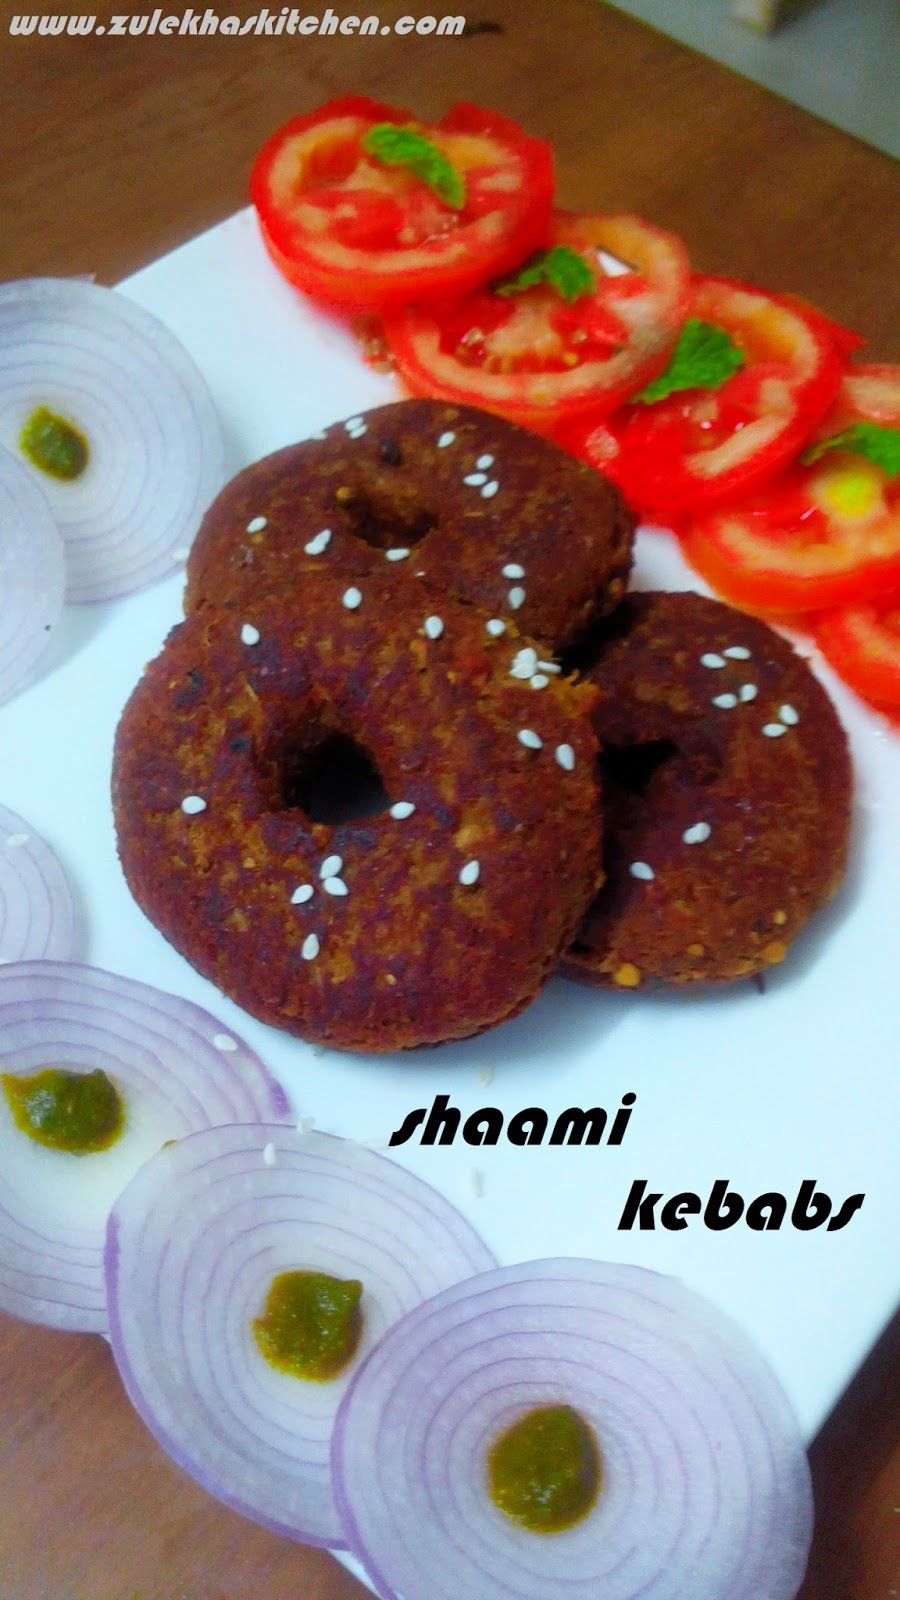 Shaami kebab Recipe